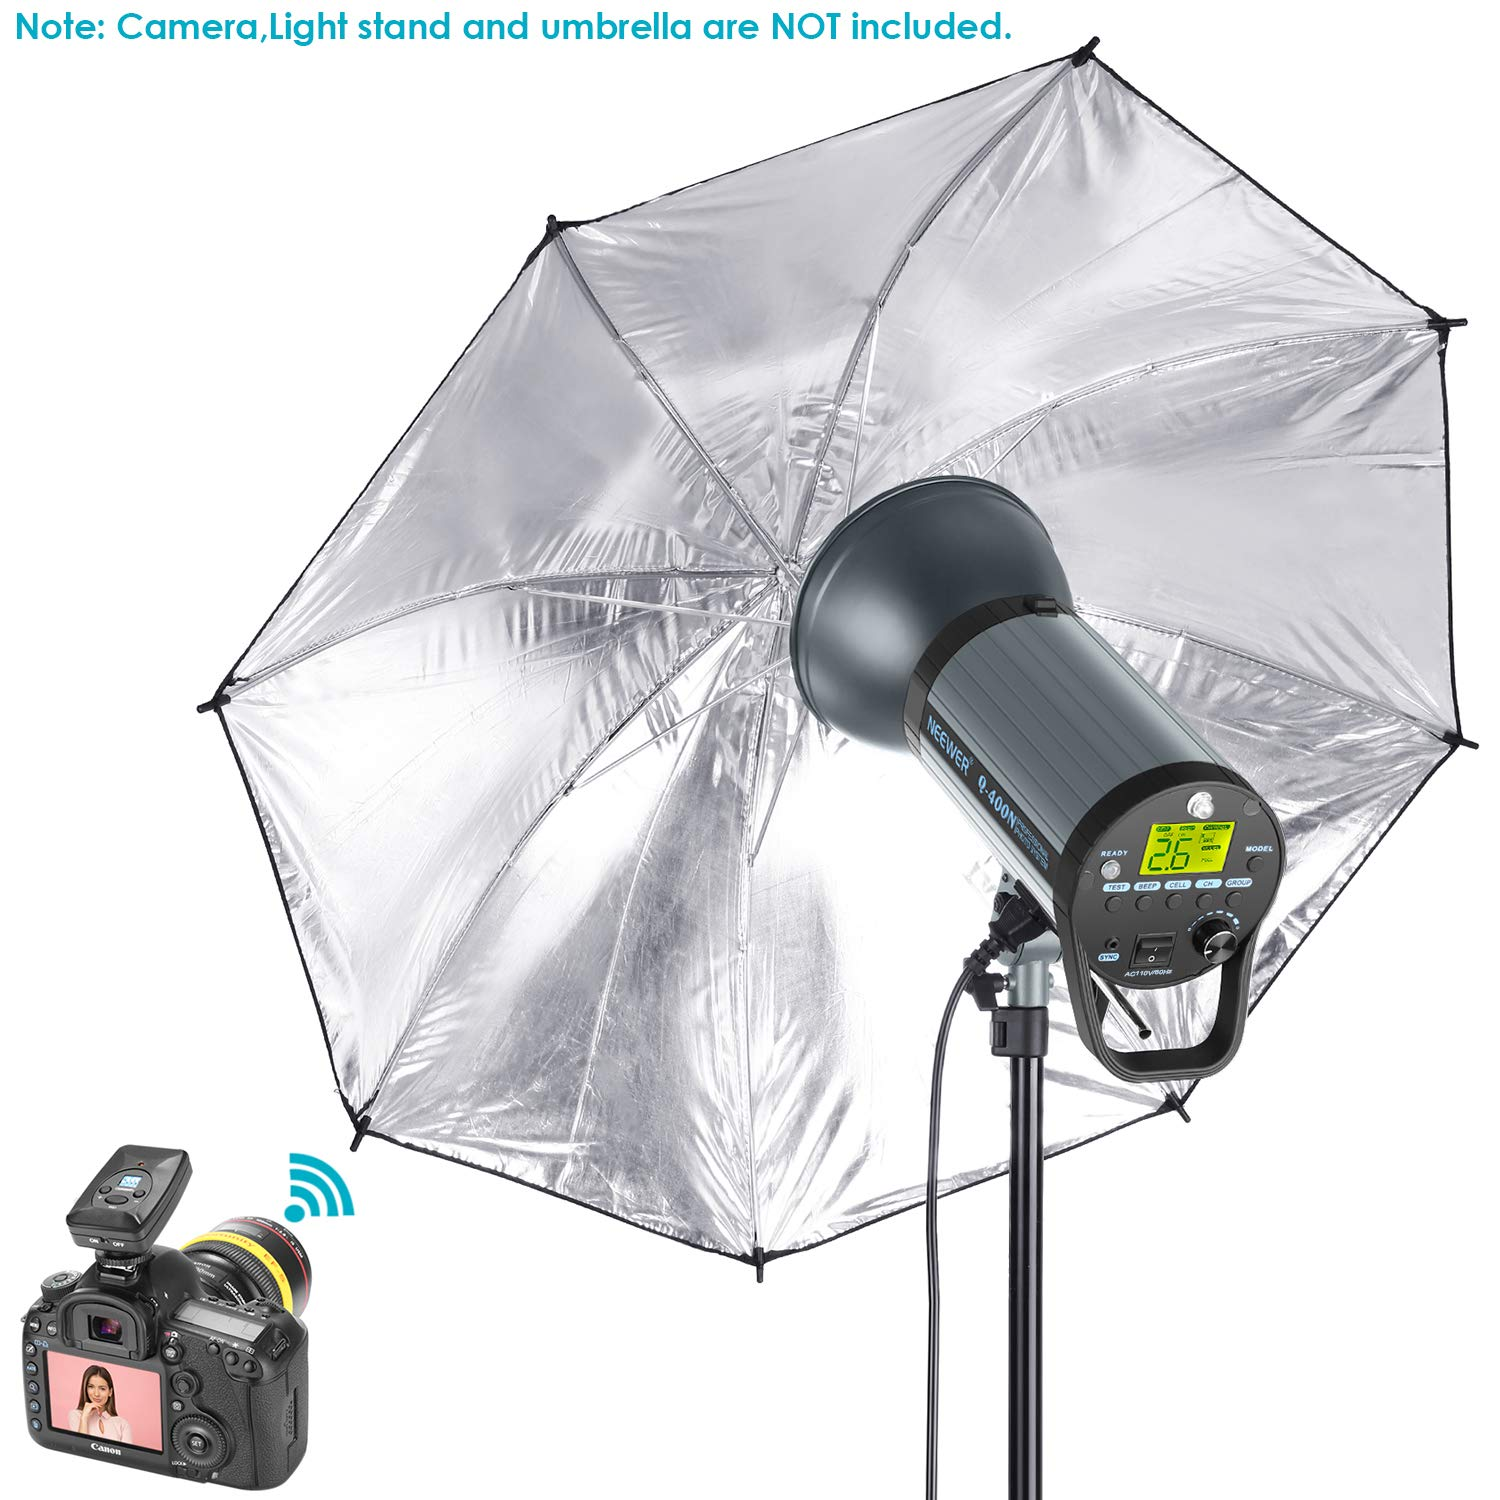 Recycle in 0.01-0.5 Sec Q400N Neewer 400W GN65 Studio Flash Strobe Light Monolight with 2.4G Wireless Trigger and Modeling Lamp Bowens Mount for Indoor Studio Portrait Photography